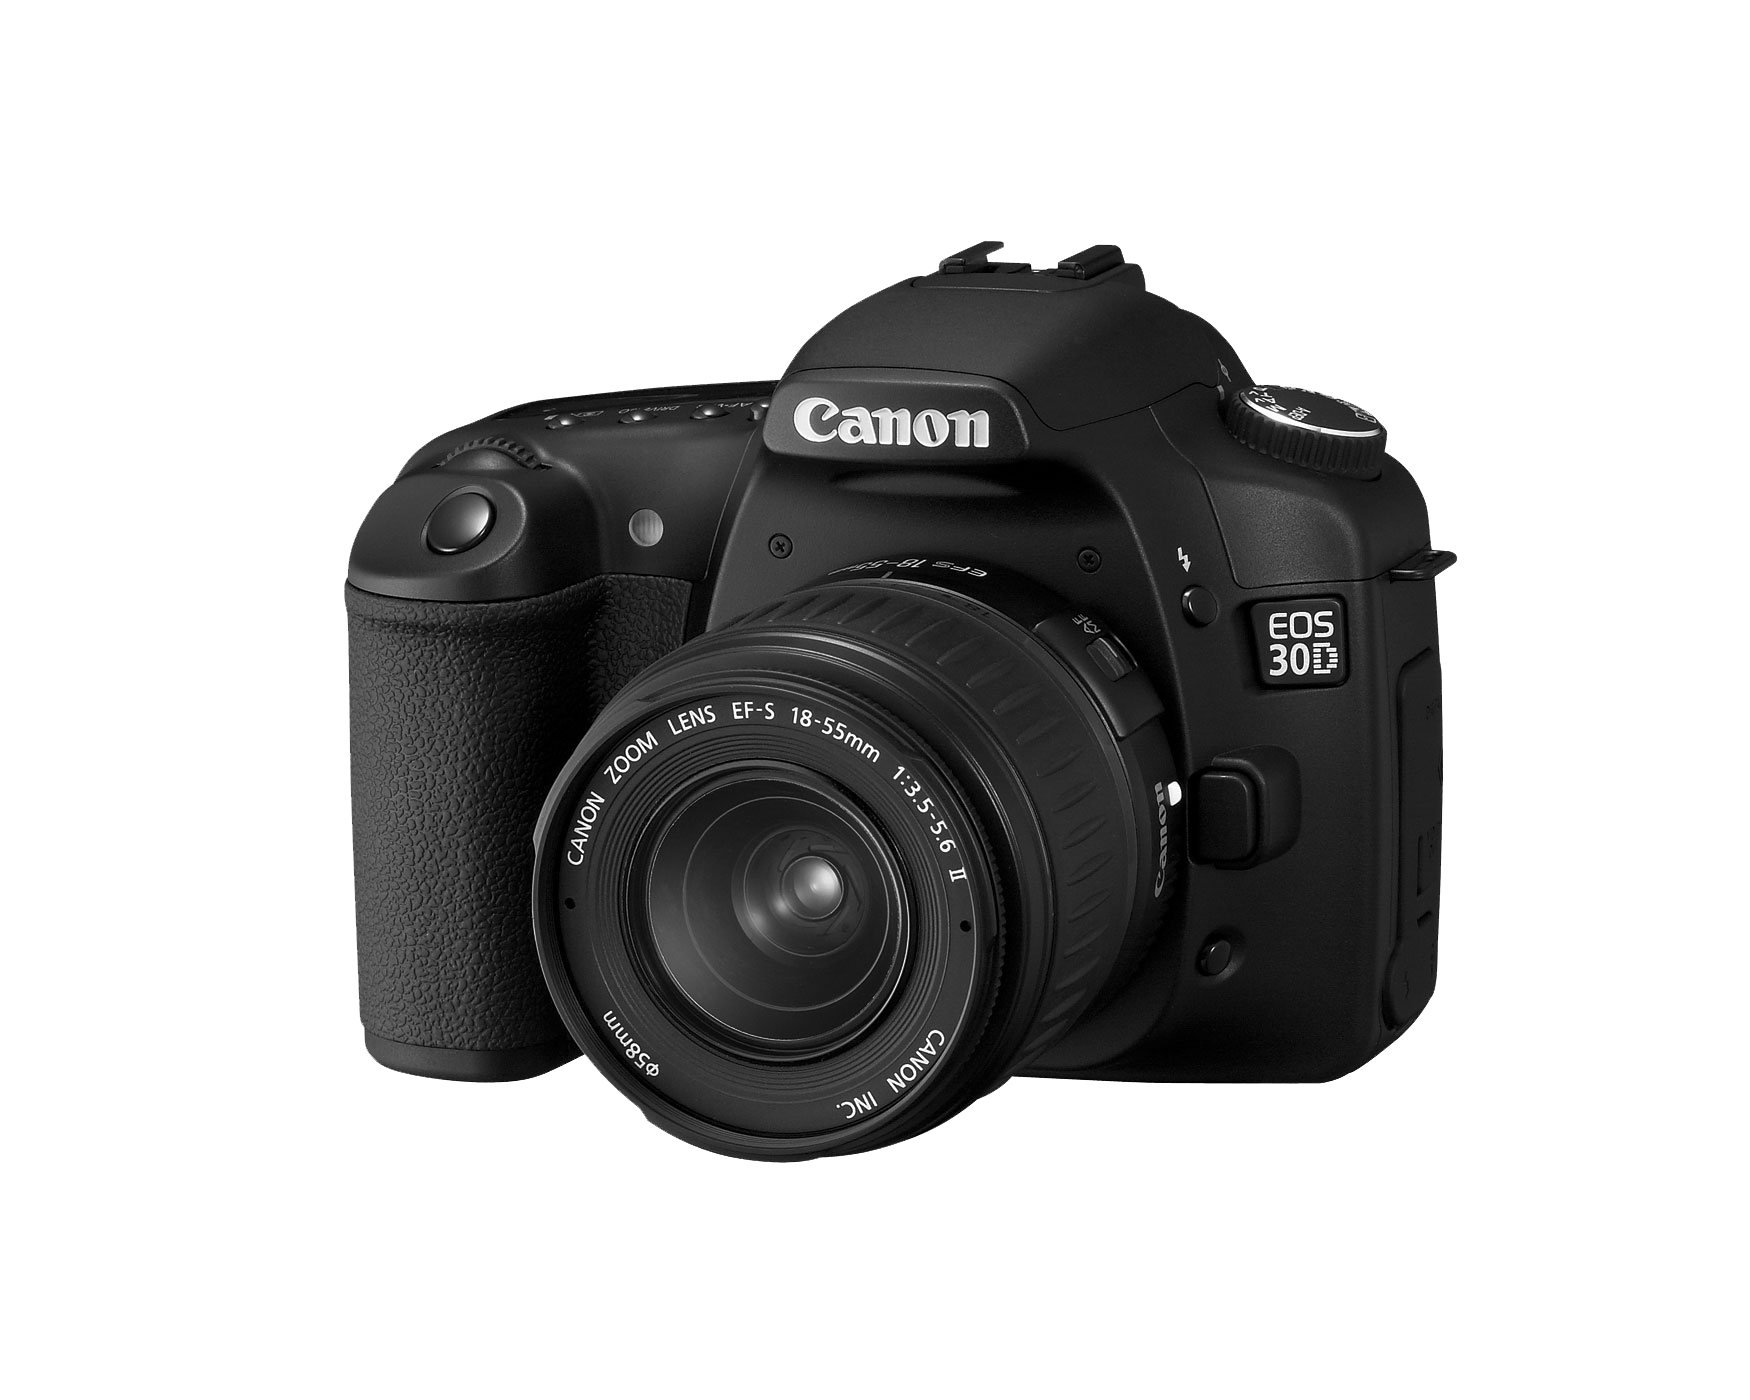 Canon Eos 30 Photo Camera transparent PNG.